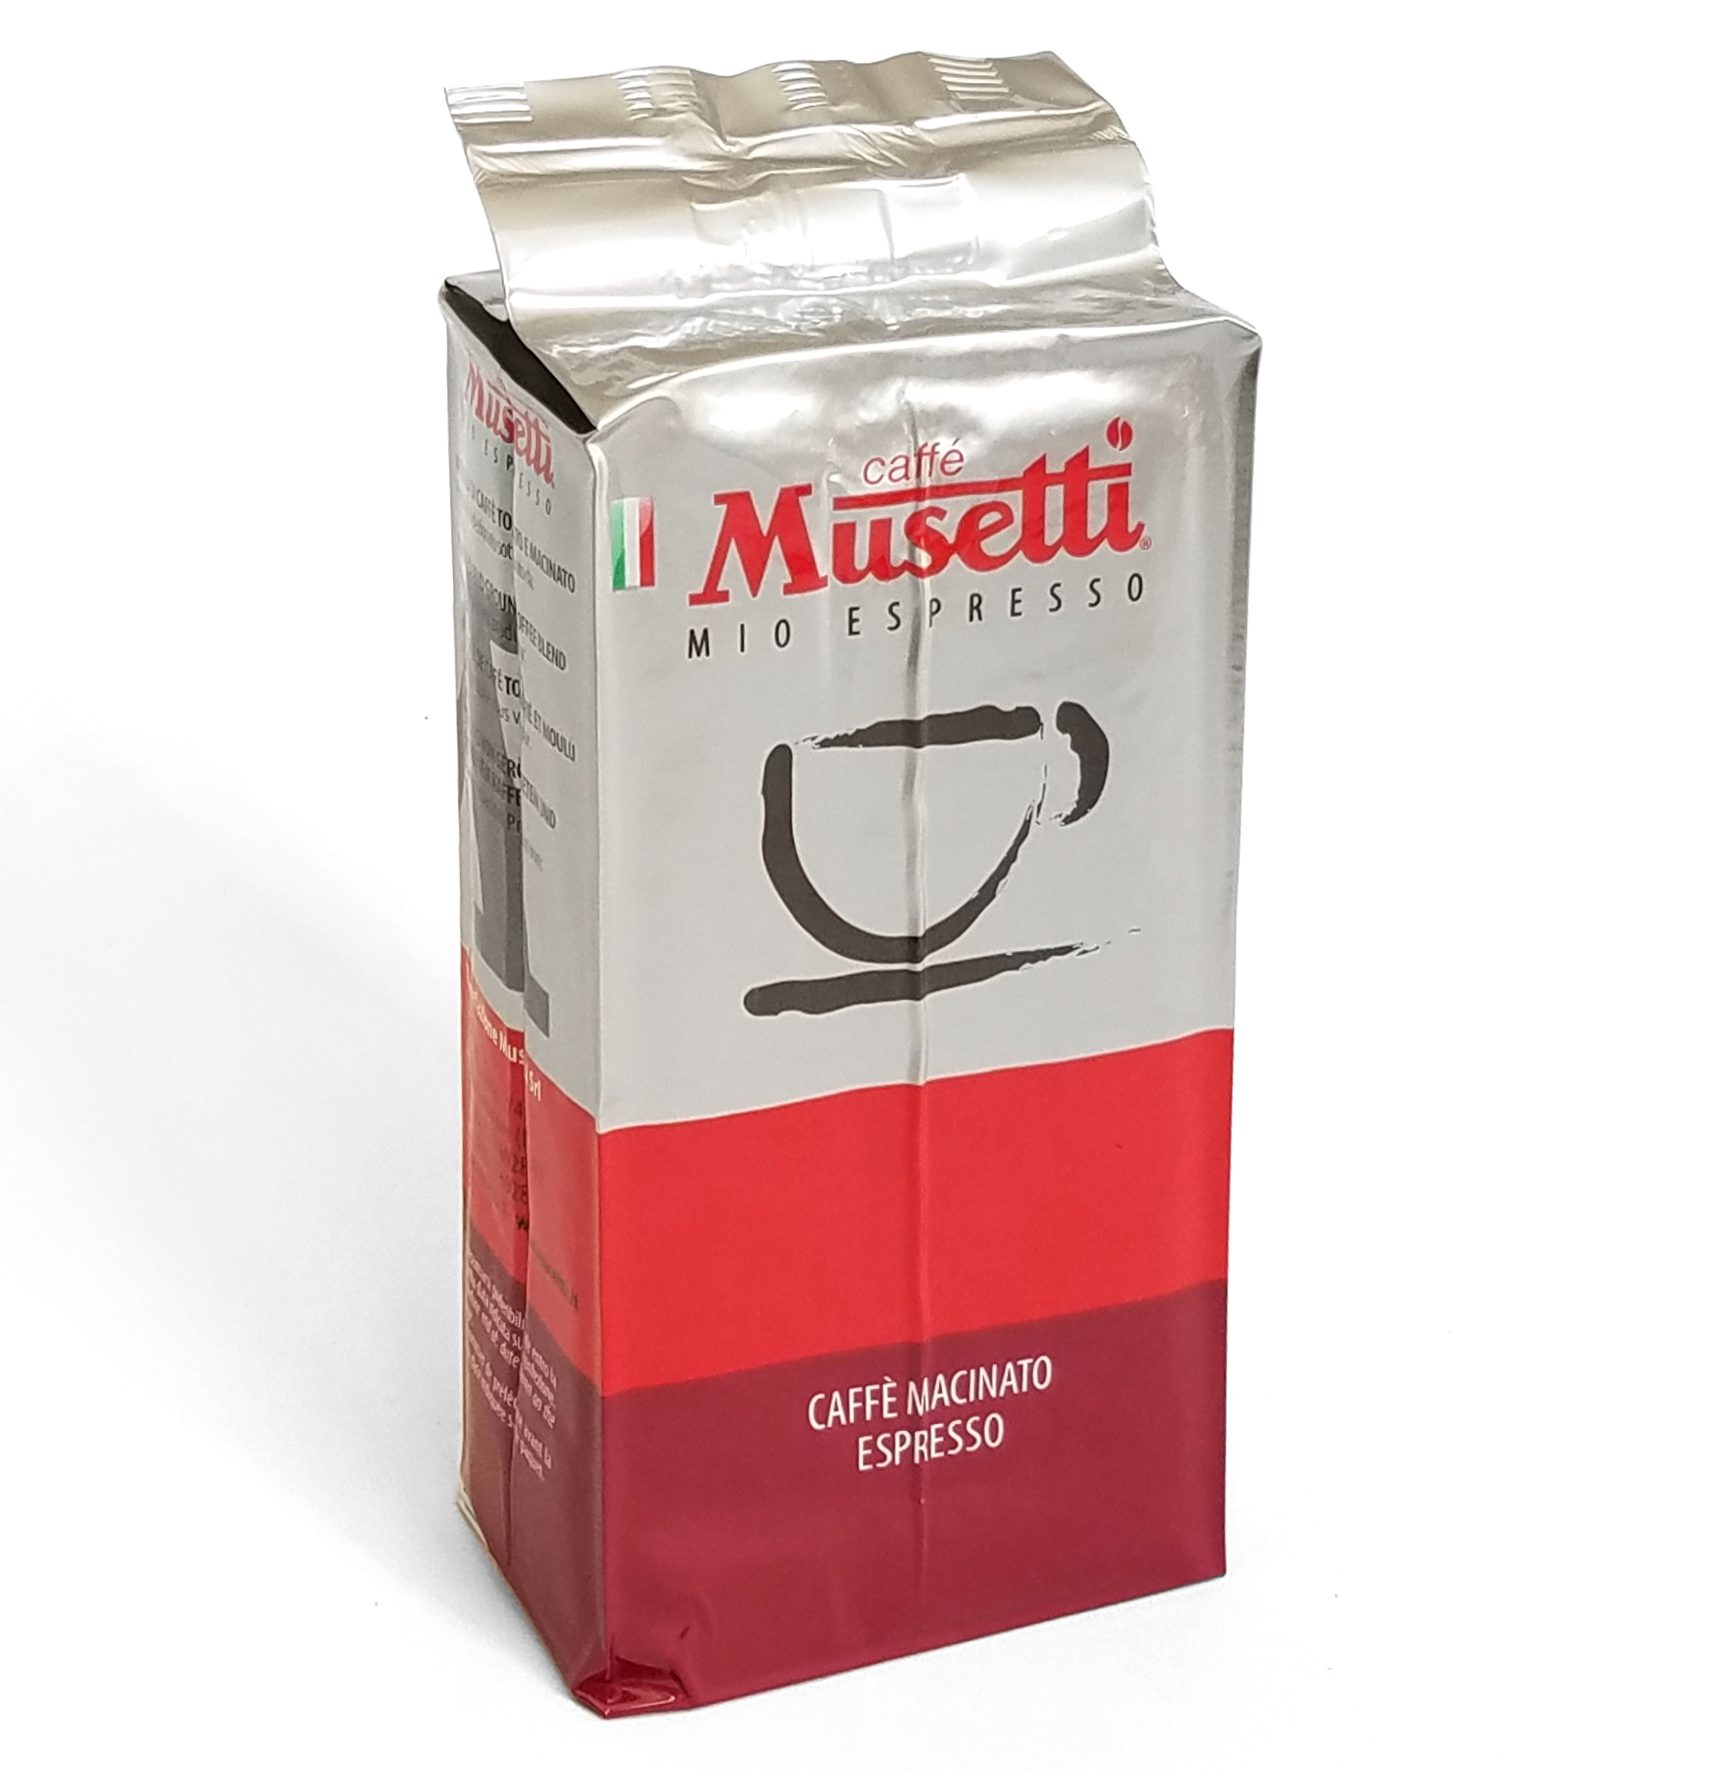 Musetti Coffee - Rosa Espresso - 250 gr (8.8 oz) Ground